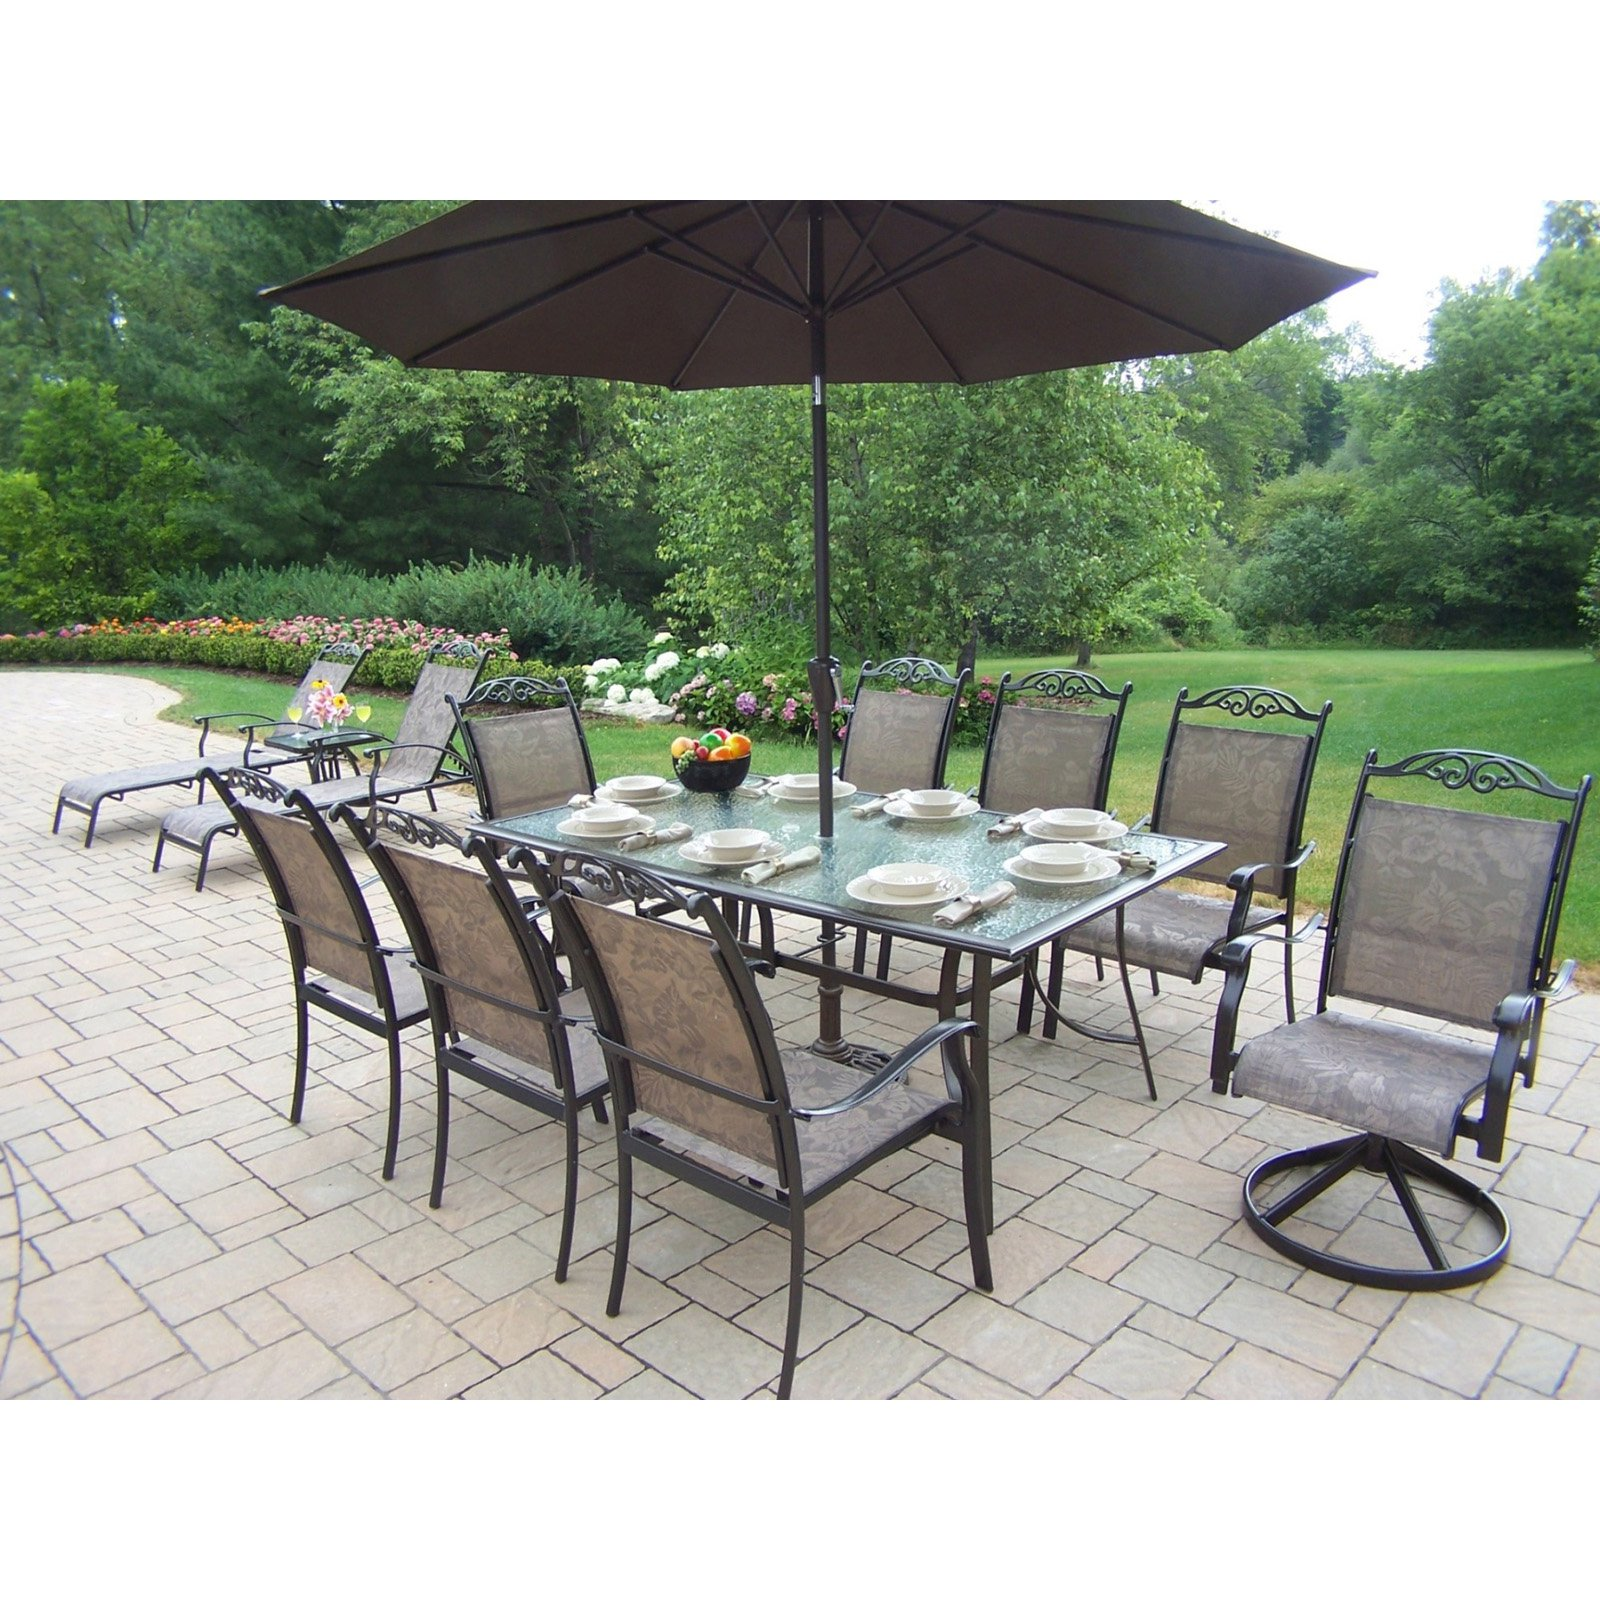 Oakland Living Cascade Patio Dining Room Set with Umbrella and Stand Plus Chaise Lounge Set by Oakland Living